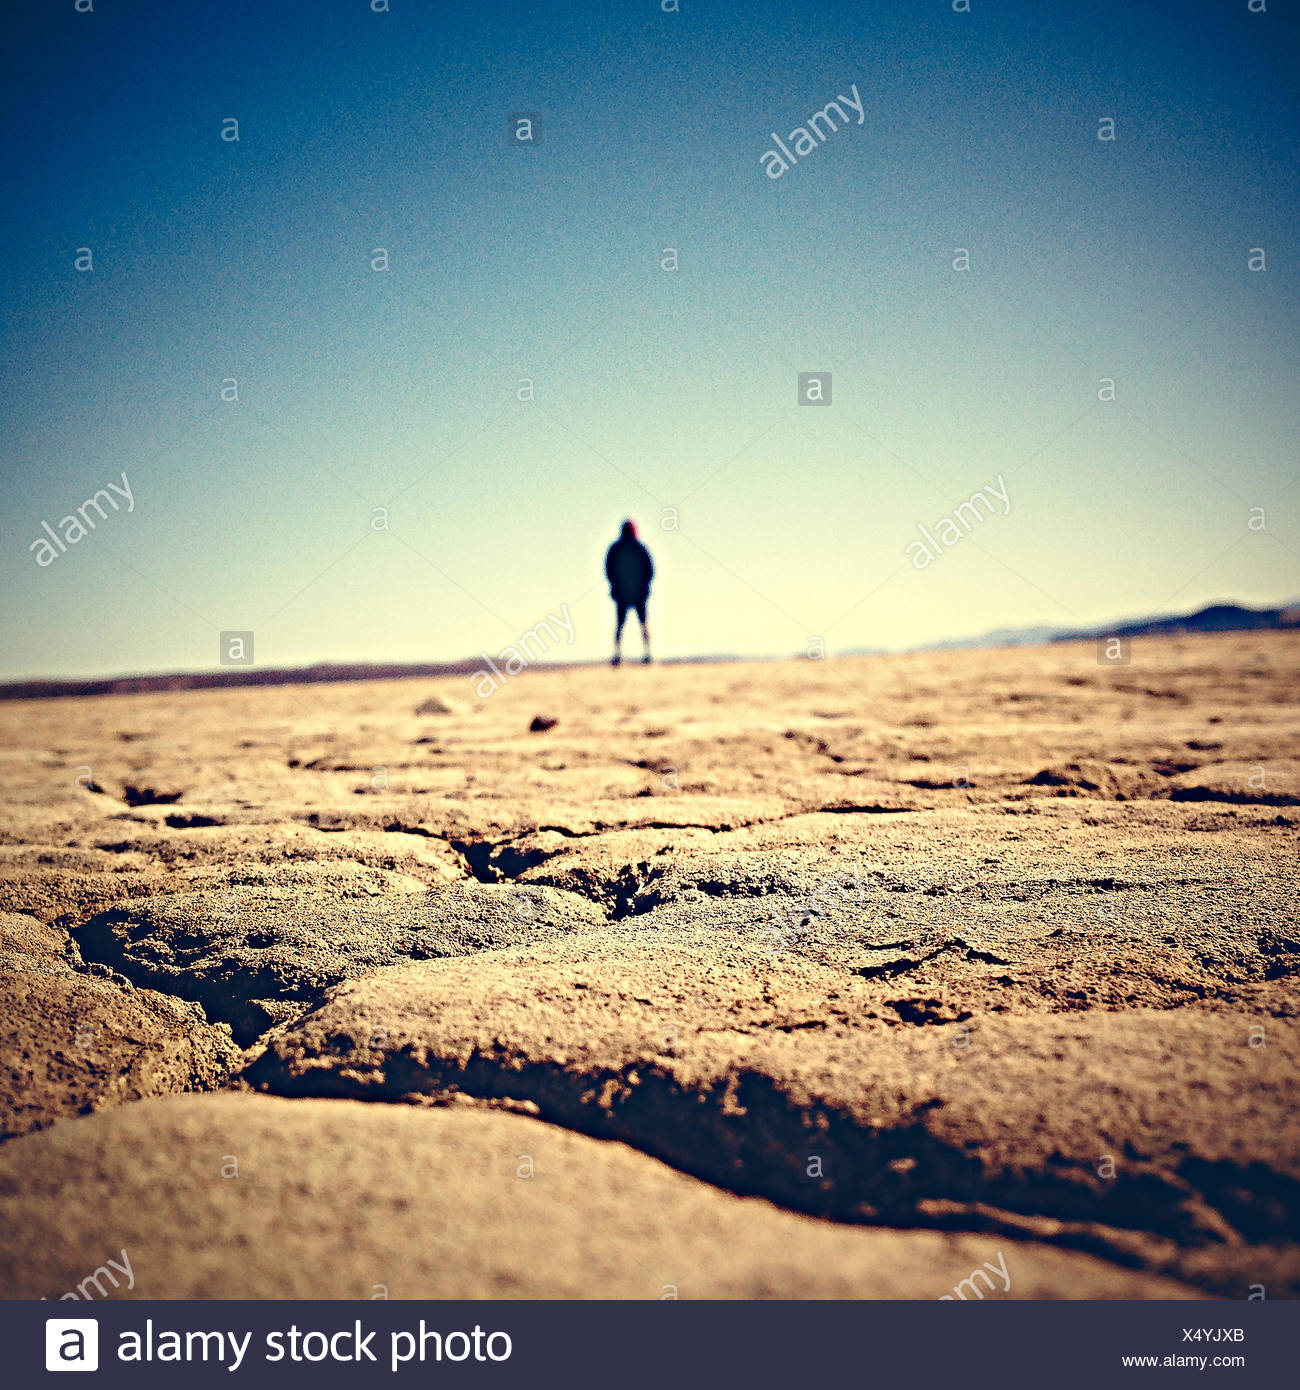 USA, California, Adelanto, El Mirage Dry Lake Stockbild